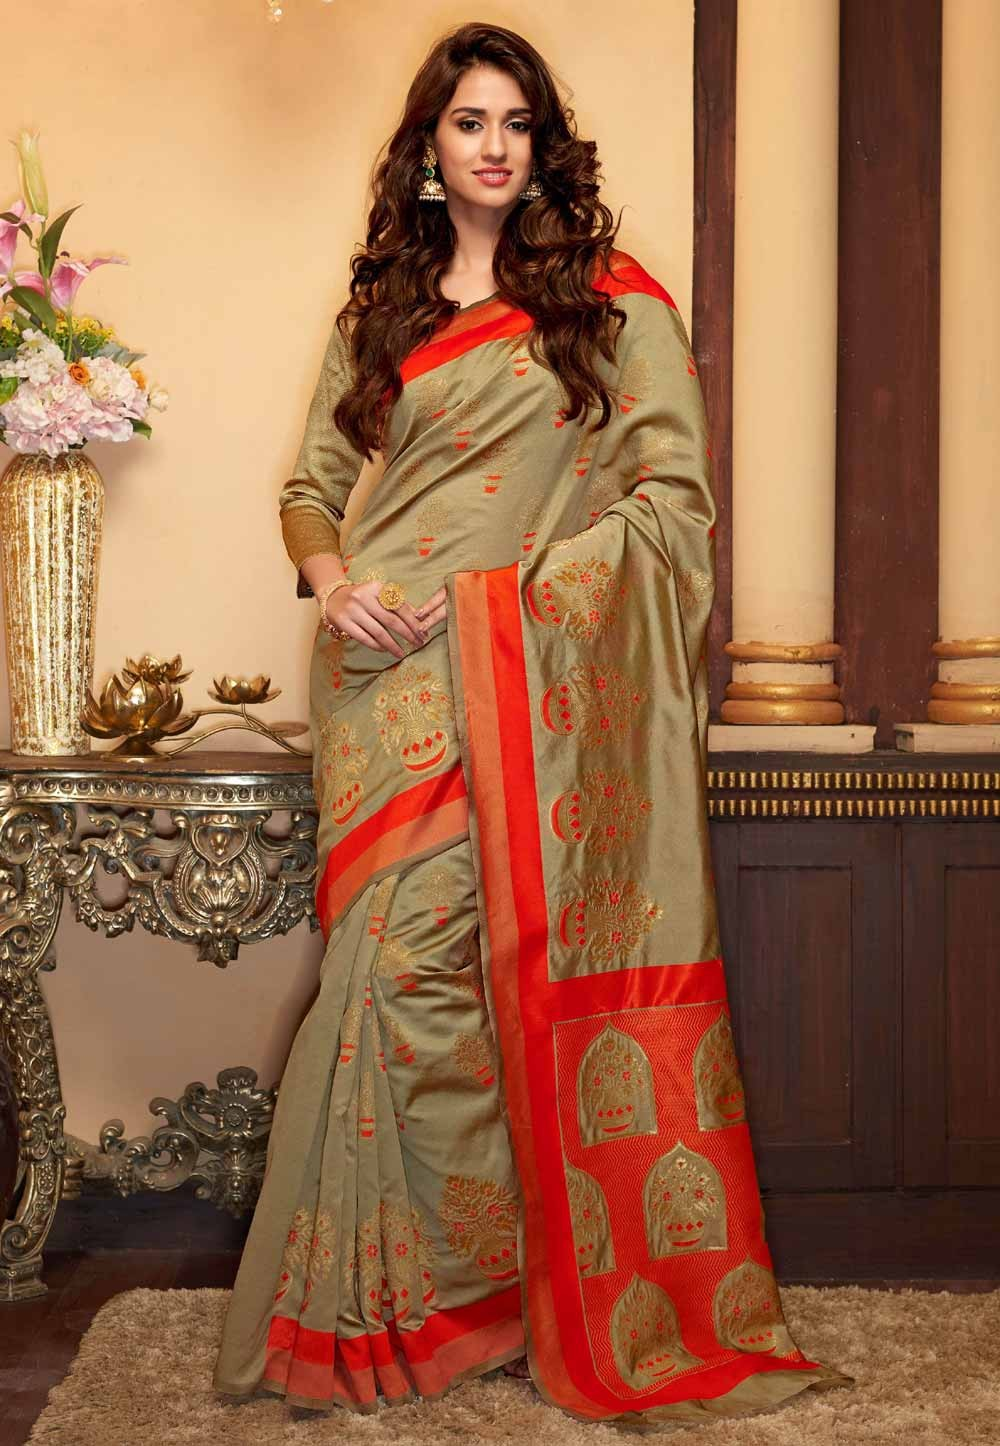 Ethnic Cotton,Silk & Beige Color Saree For Women